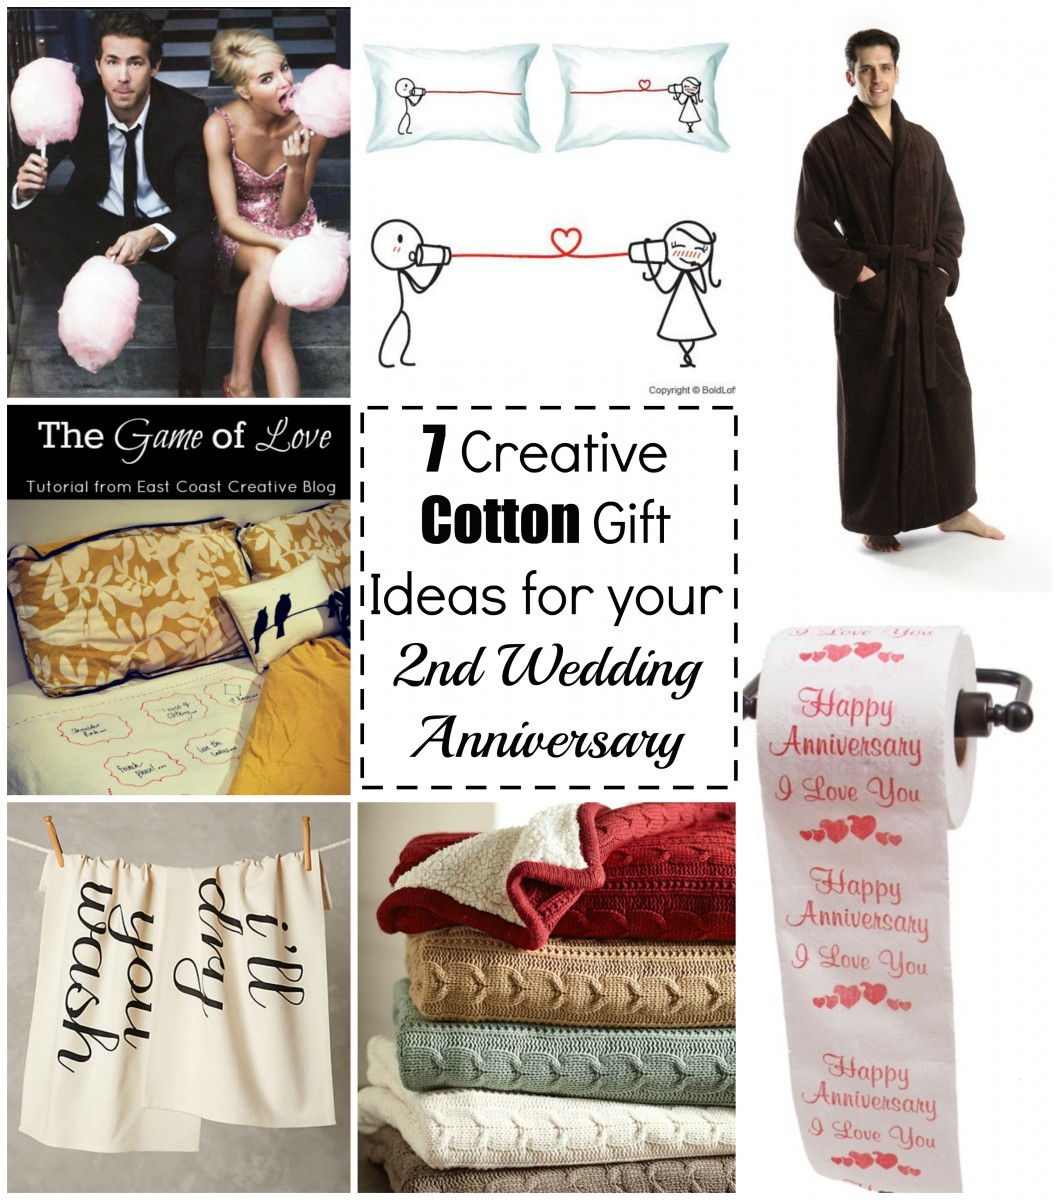 Gift Of Wedding Anniversary: 7 Cotton Gift Ideas For Your 2nd Wedding Anniversary